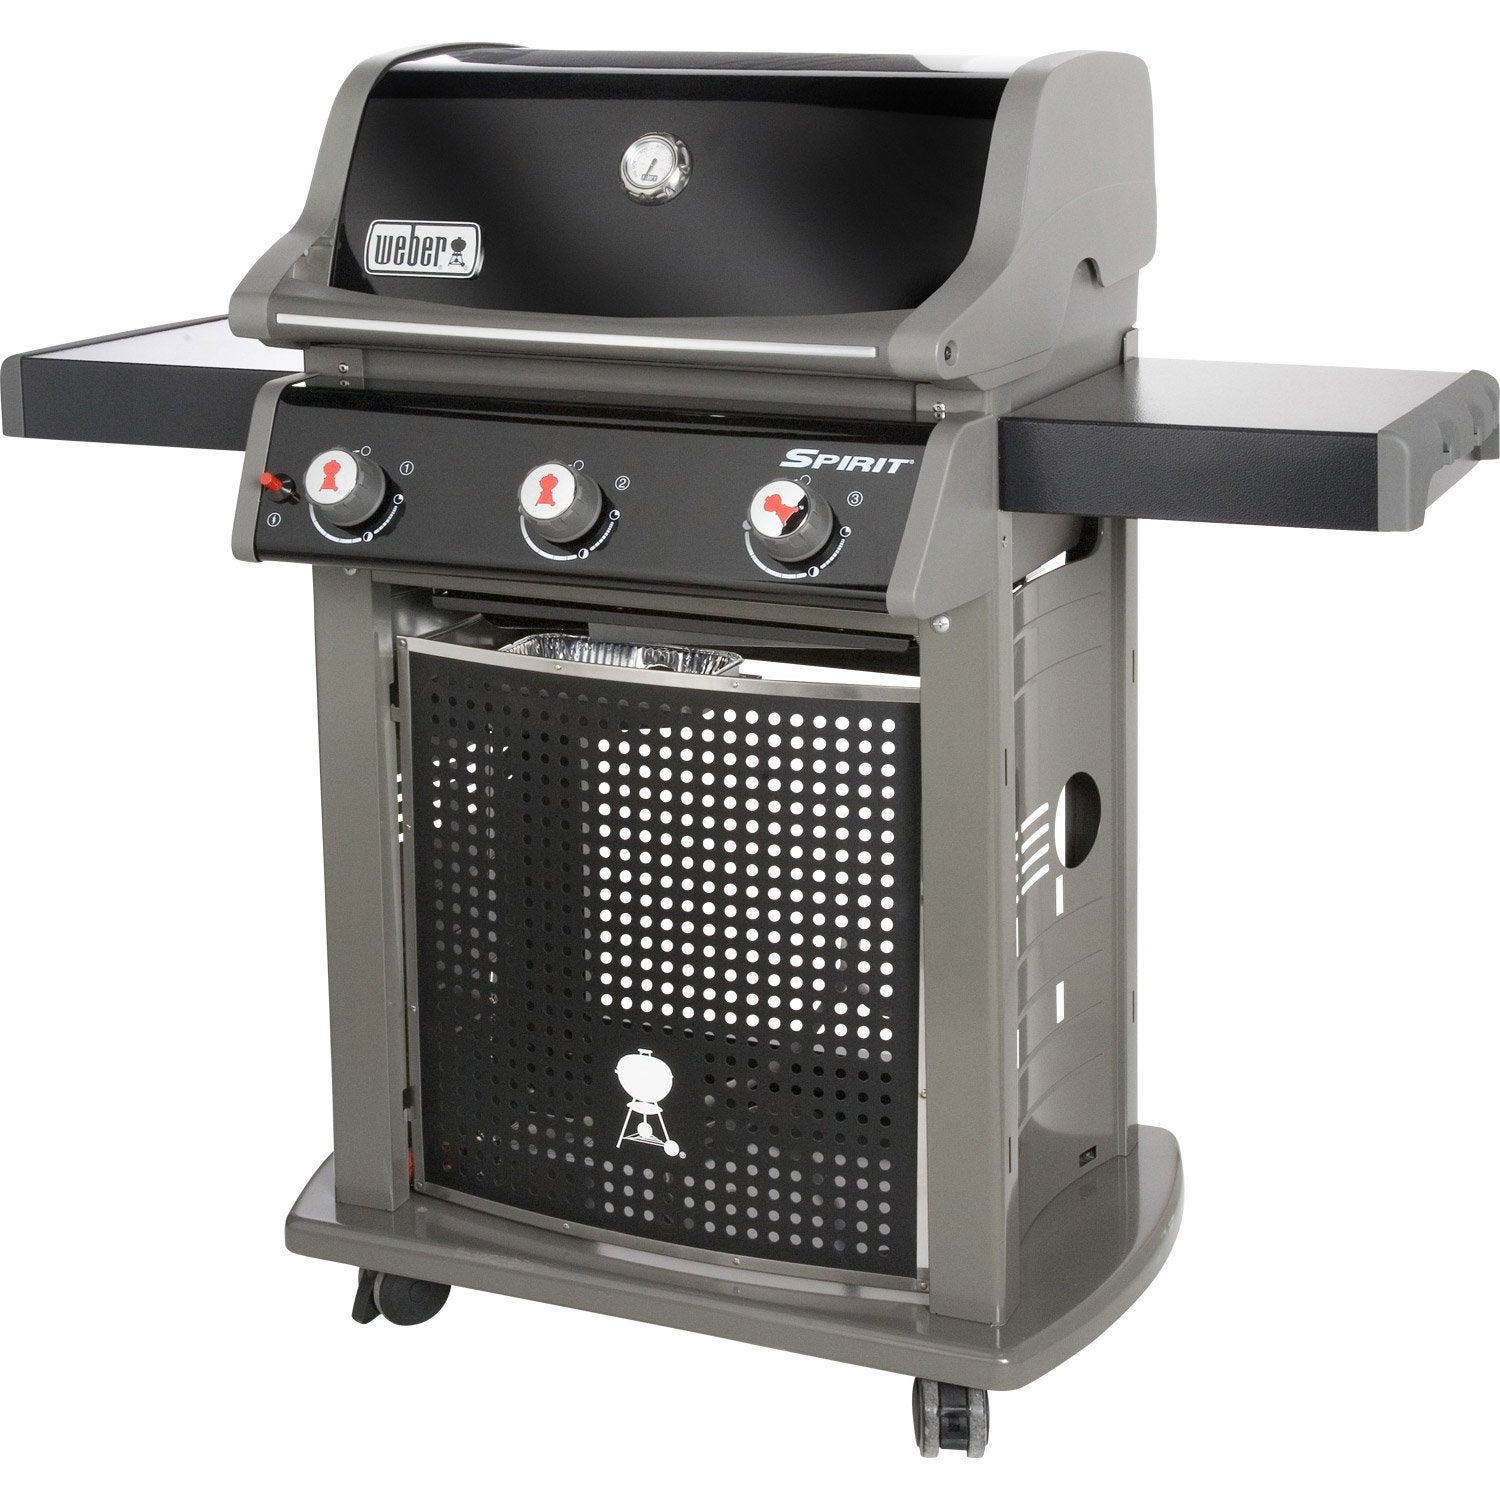 Barbecue au gaz weber spirit classic e 310 3 bruleurs for Barbecue a gaz leroy merlin